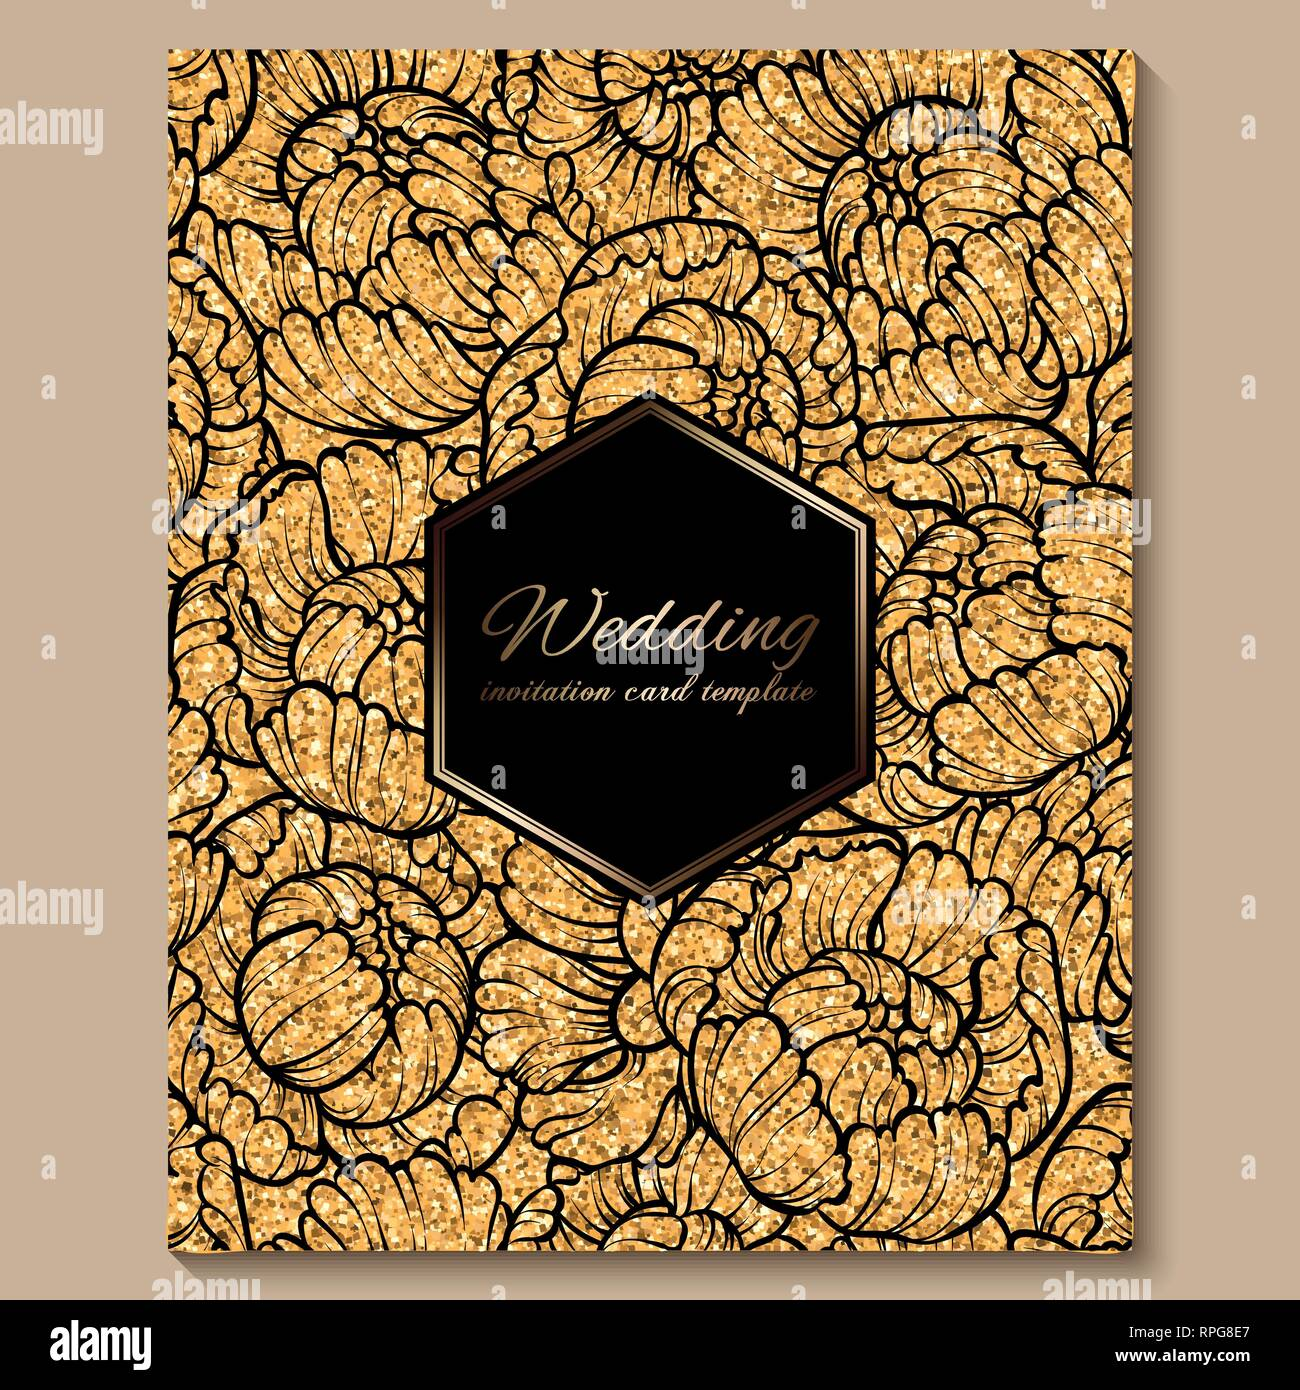 https www alamy com antique royal luxury wedding invitation card golden glitter background with frame and place for text black lacy foliage made of roses or peonies image237615119 html